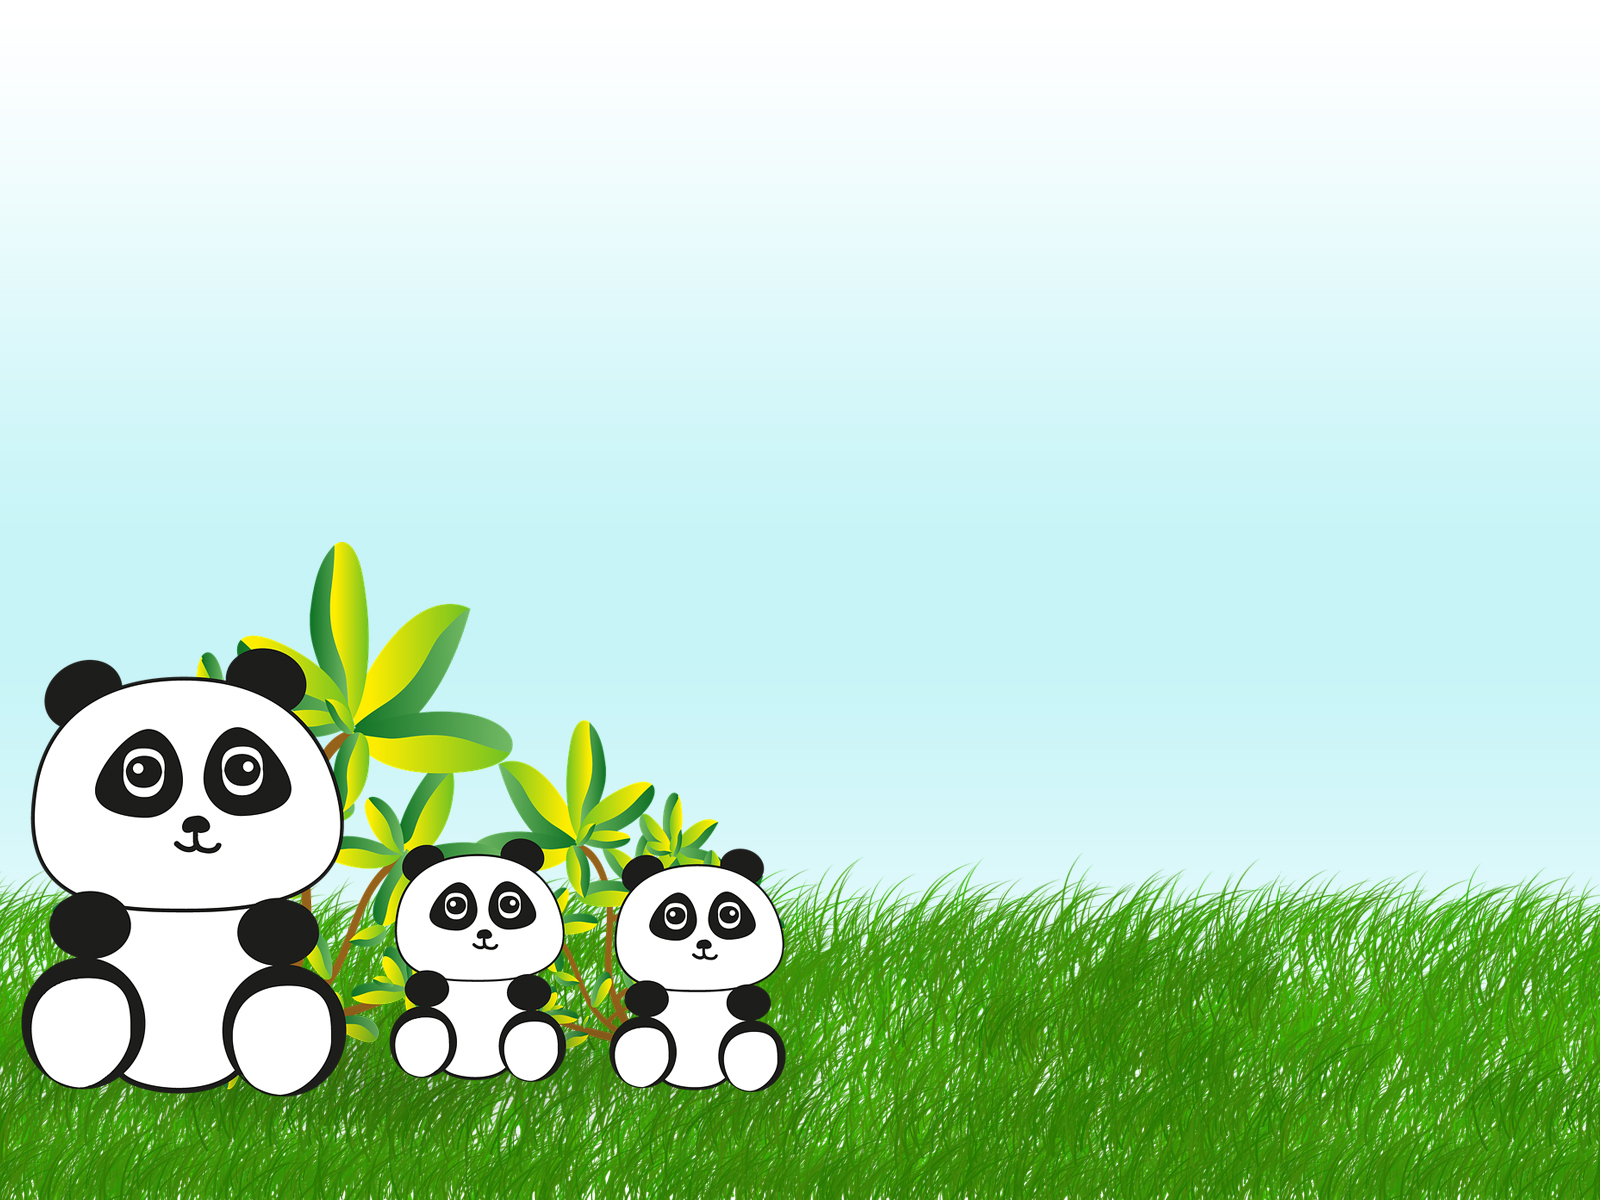 Paint Colors For House Panda Bear In China Backgrounds Animals Green Grey